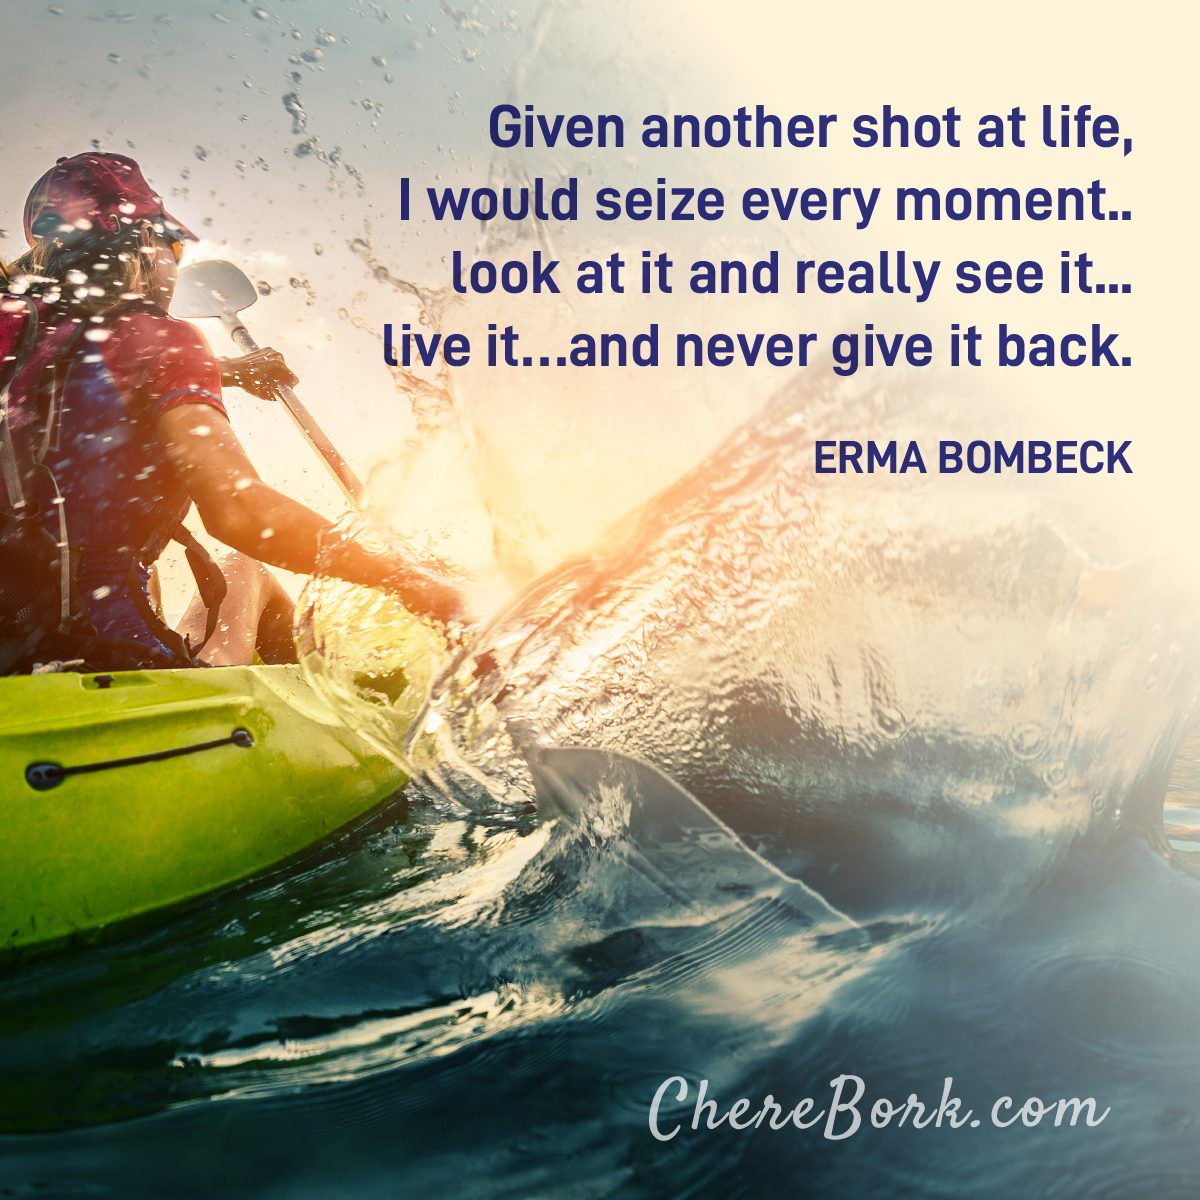 Given another shot at life, I would seize every moment.. look at it and really see it... live it...and never give it back. -Erma Bombeck